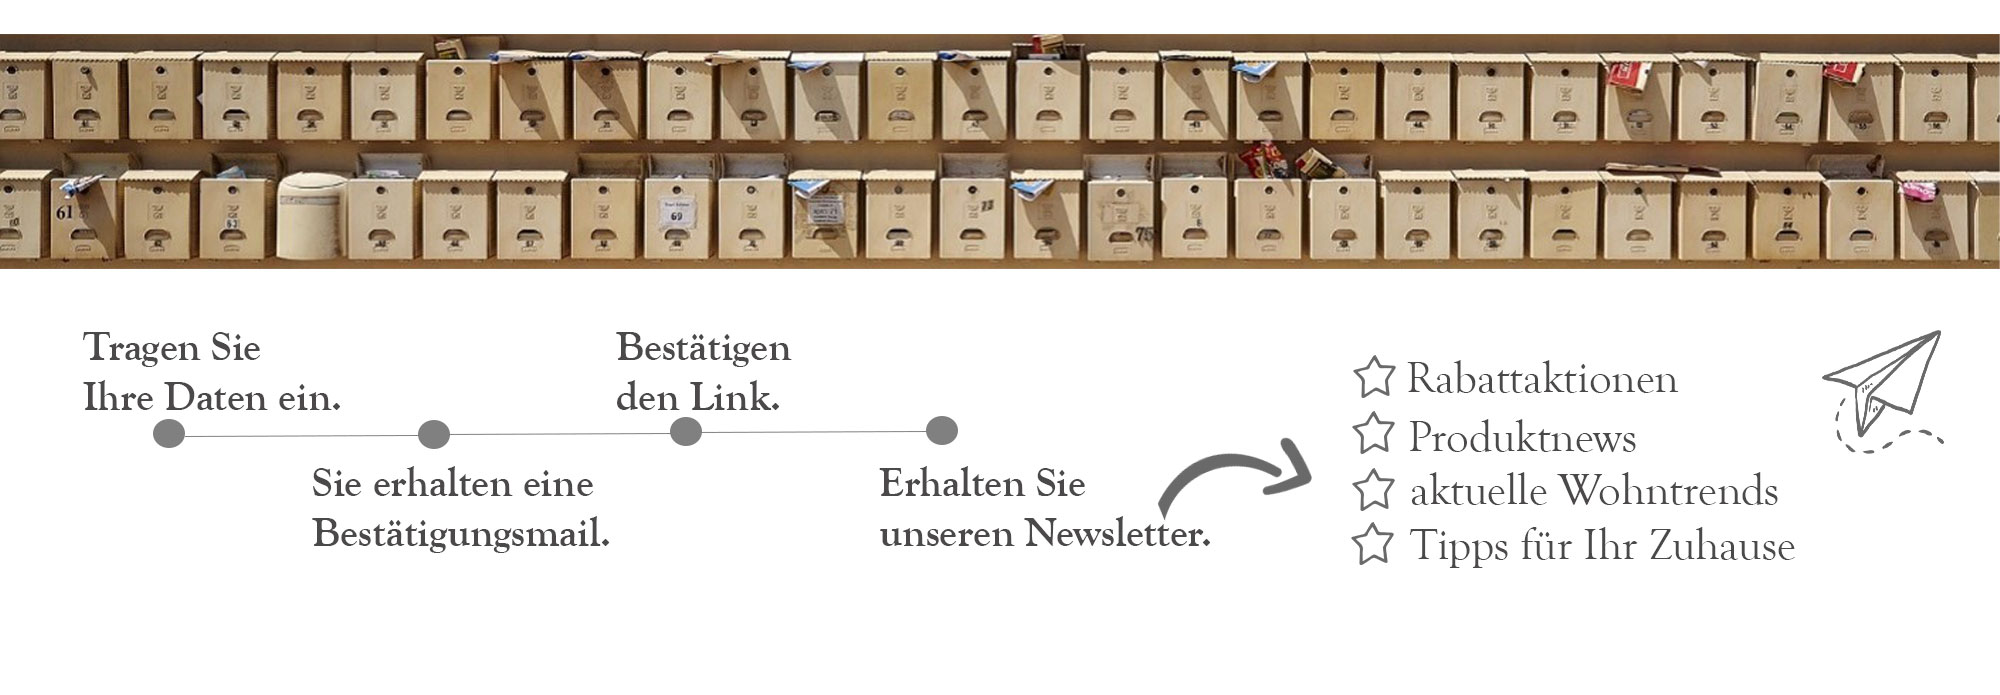 Newsletter-Entwurf04kSArUkBL4dl